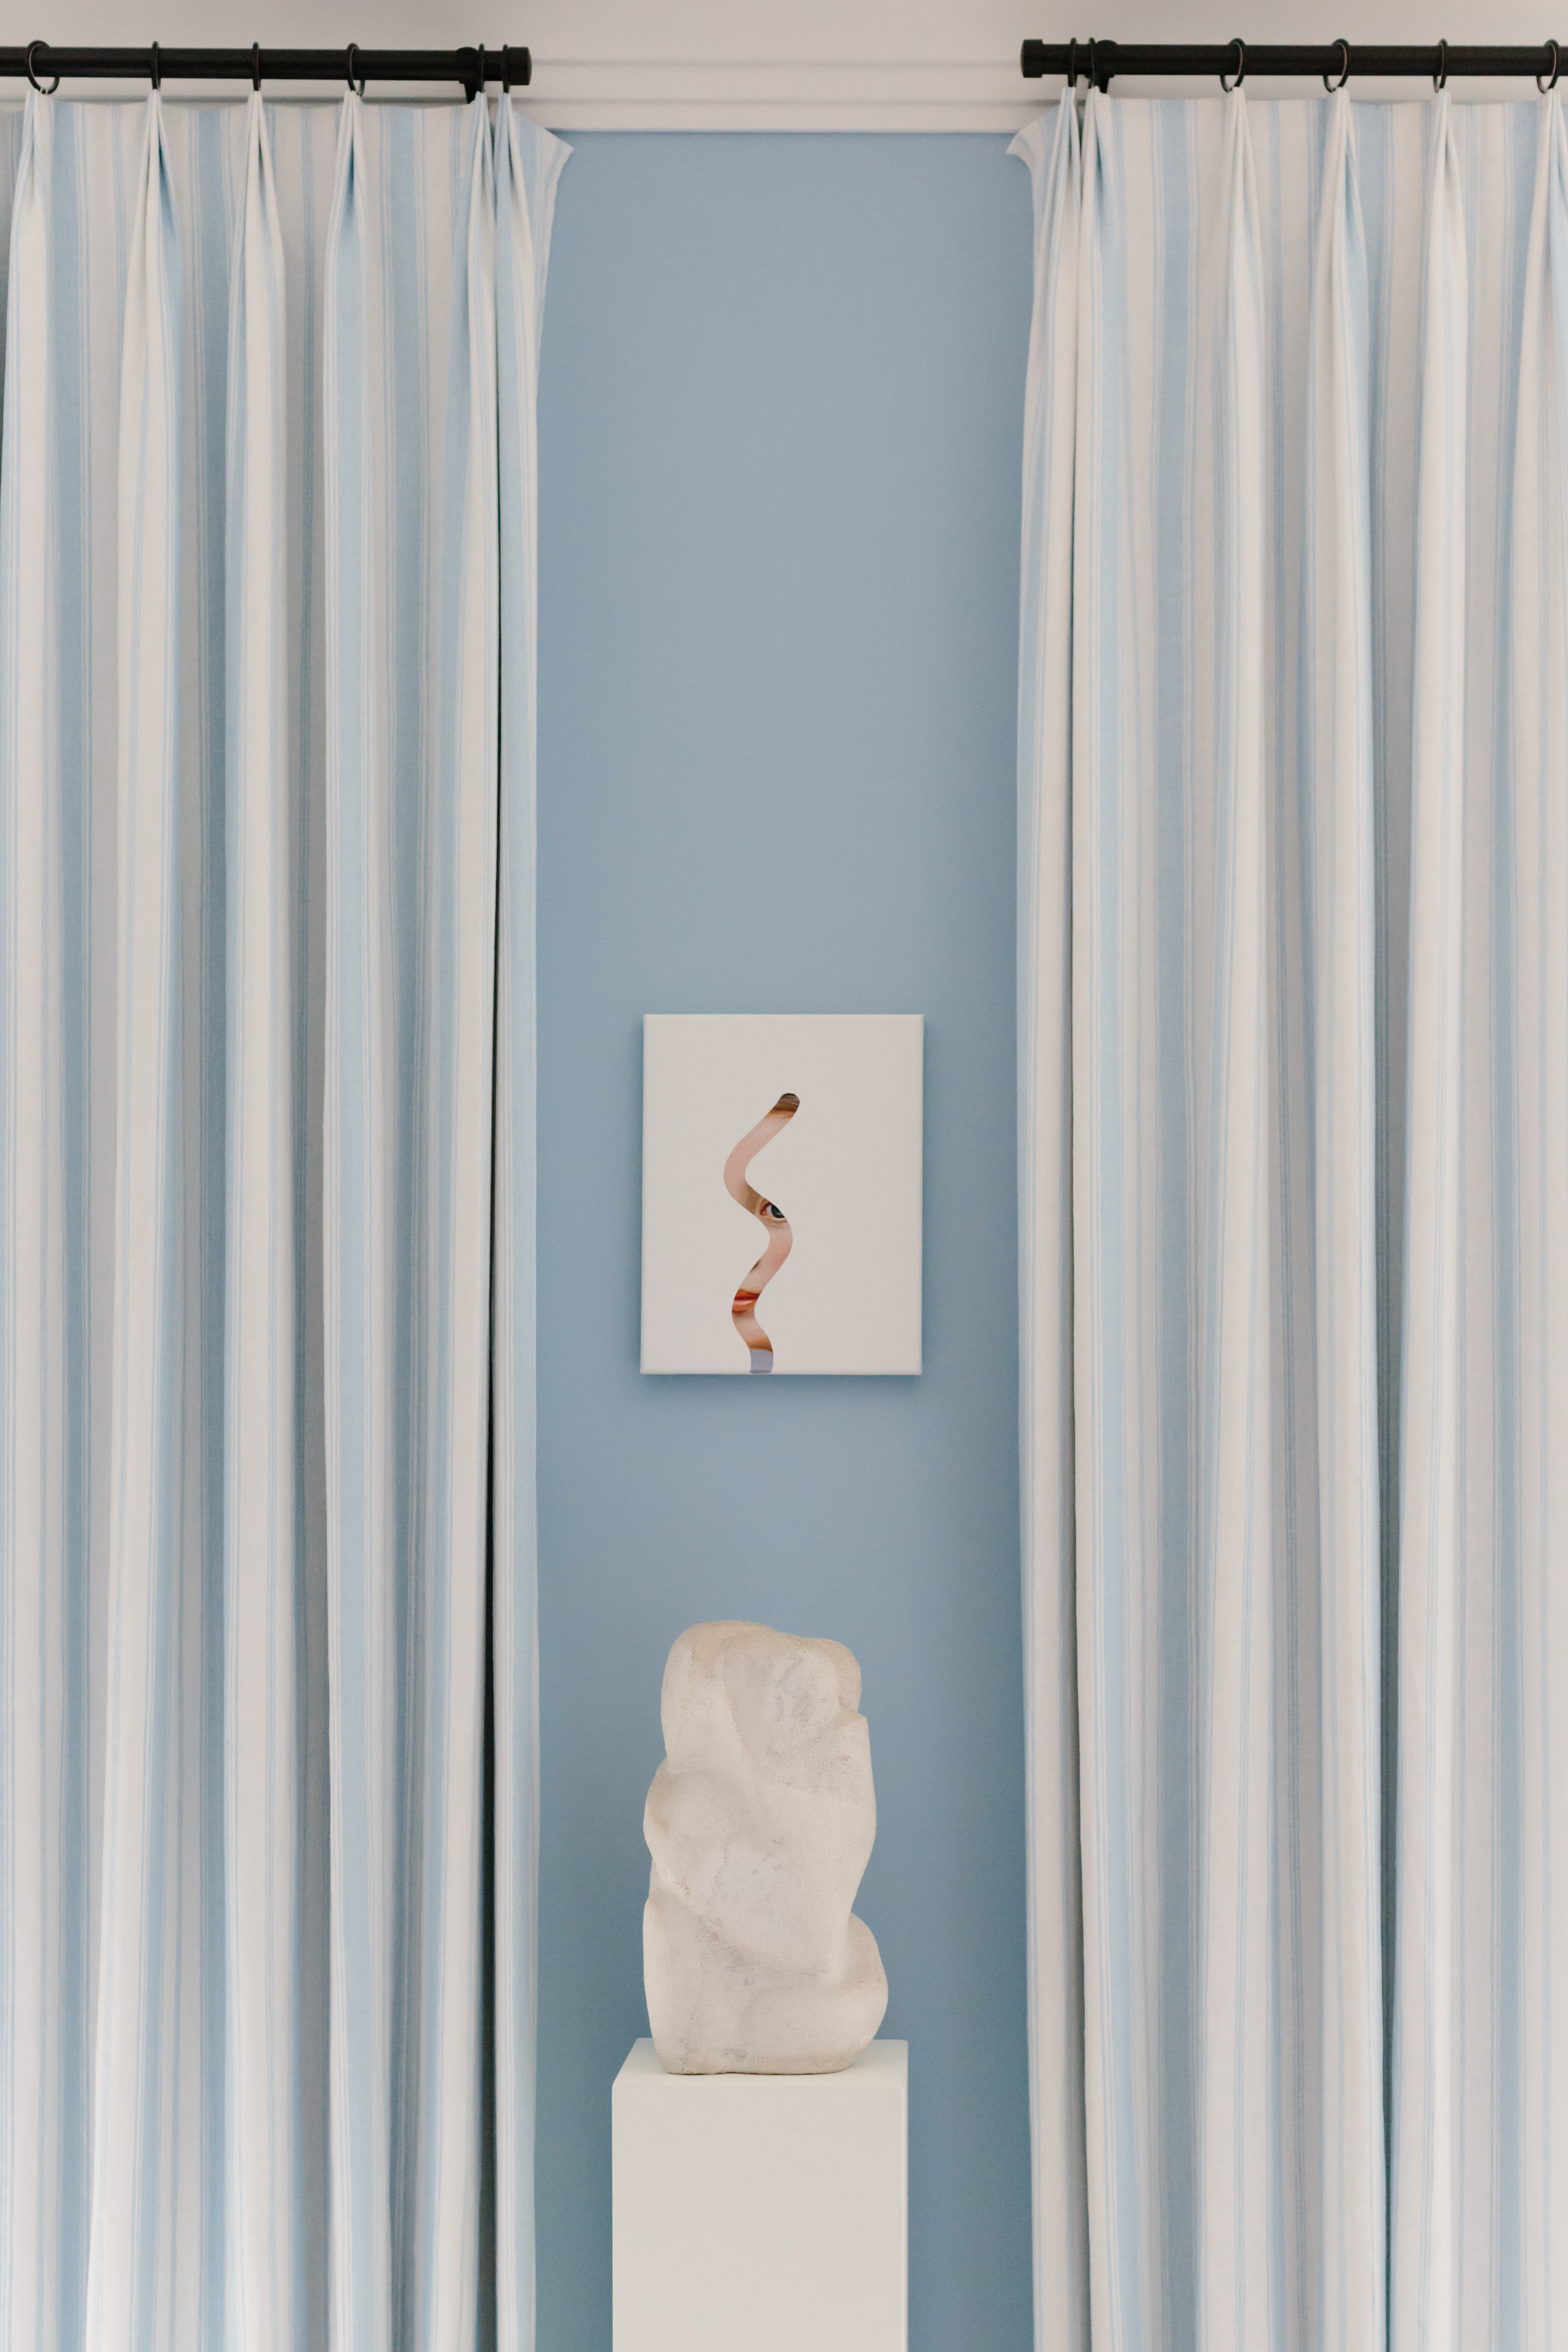 2019 Hampton Designer Showhouse featured by top US style blog, York Avenue: image of Lino Lago artwork in Alessandra Branca living room at the 2019 Hampton Designer Showhouse